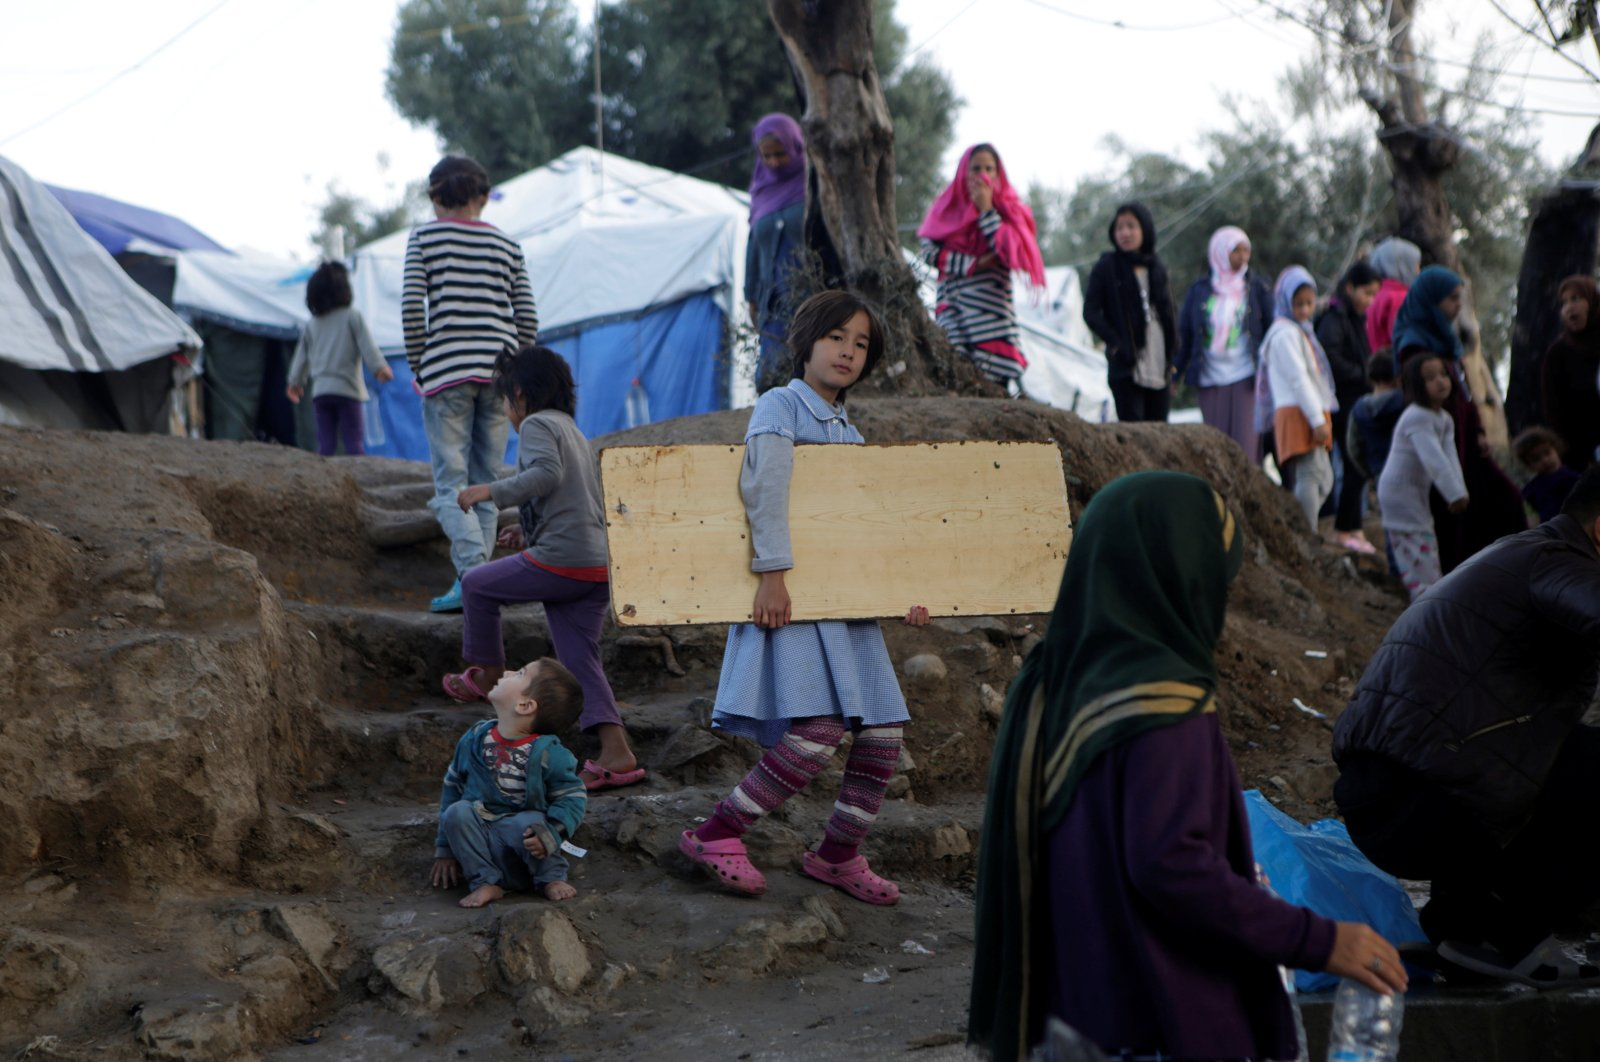 A girl carries a wooden board as she makes her way at a makeshift camp for refugees and migrants next to the Moria camp, on the island of Lesbos, Greece, Nov. 15, 2019. (REUTERS)